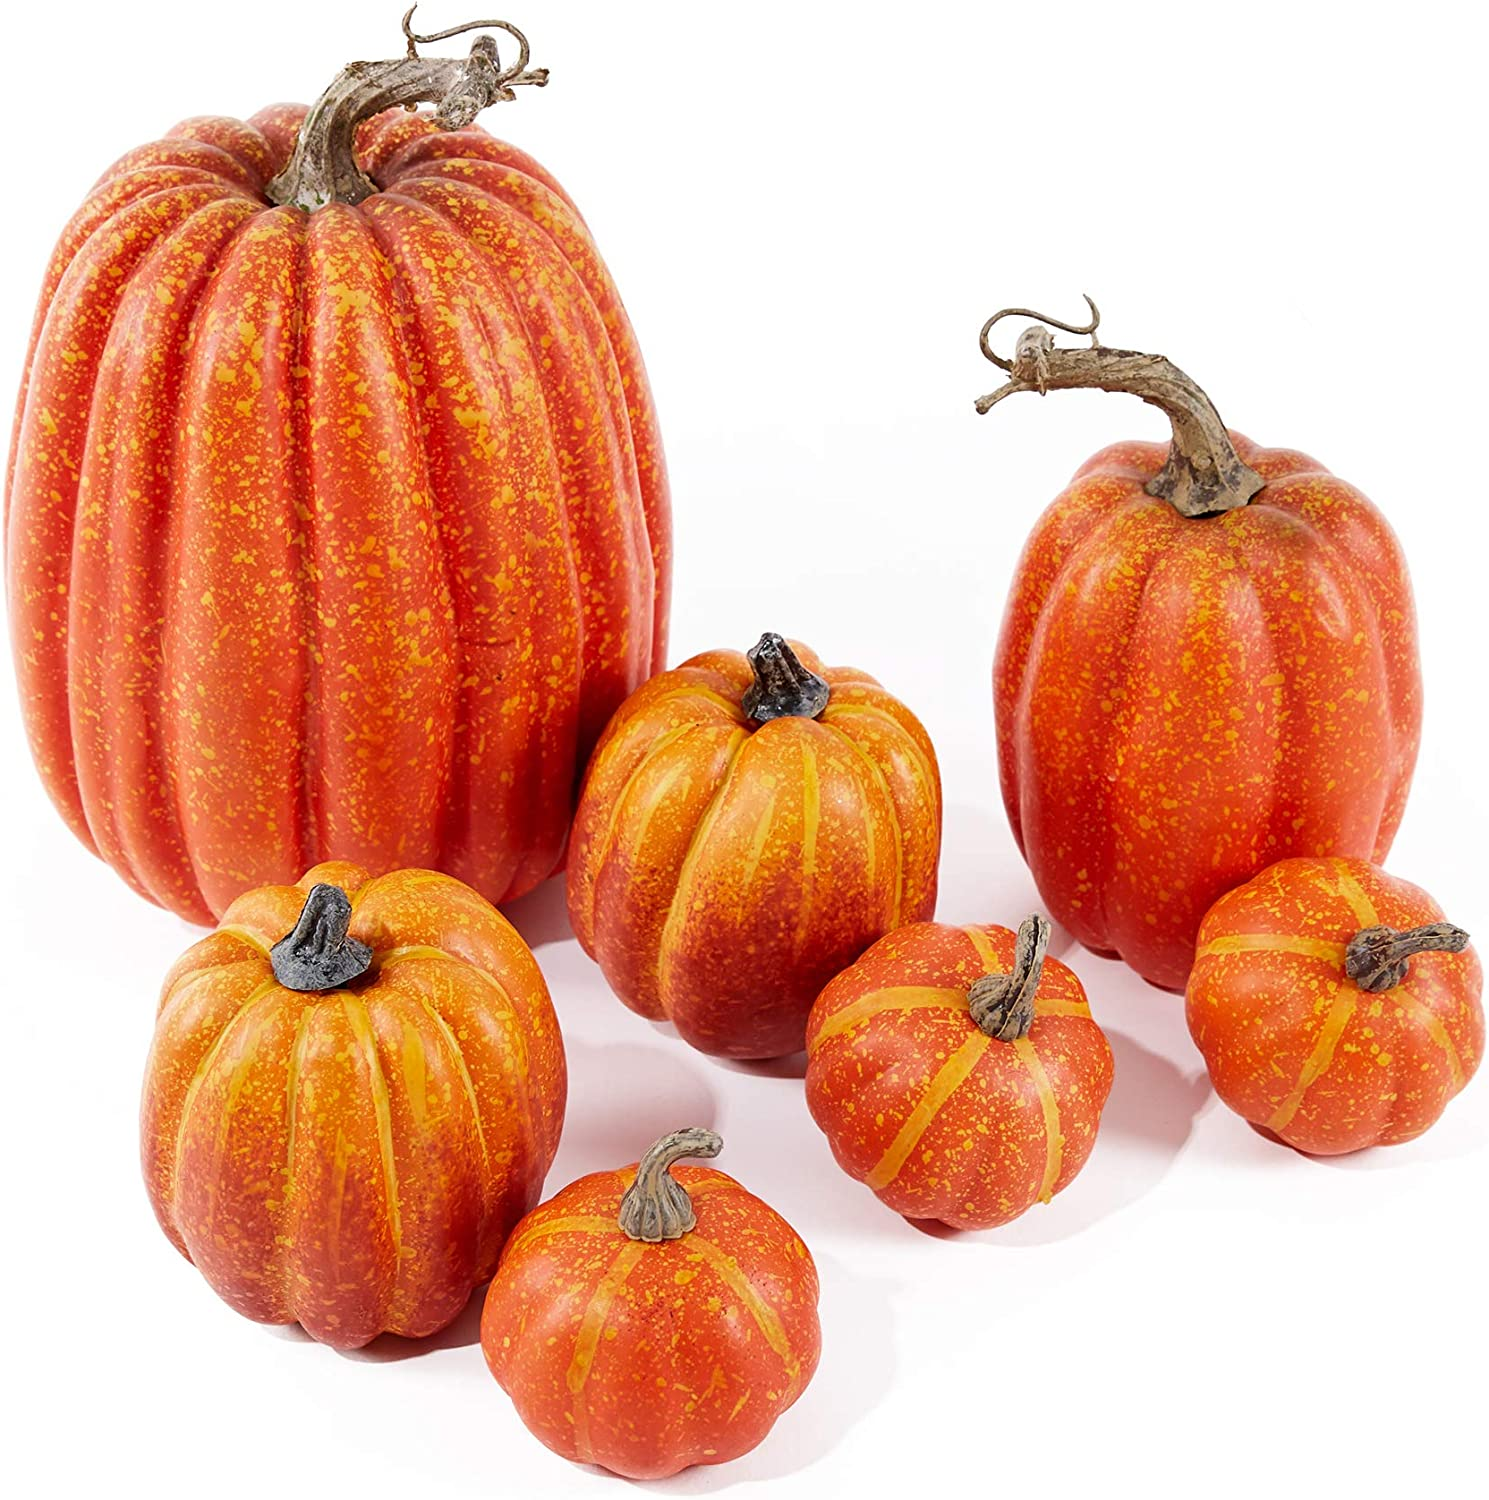 Lanpn Assorted Sizes Rustic Harvest Fake Artificial Pumpkins Decoration for Halloween Fall Thanksgiving Harvest Decor Decorating Decorations (7pcs)